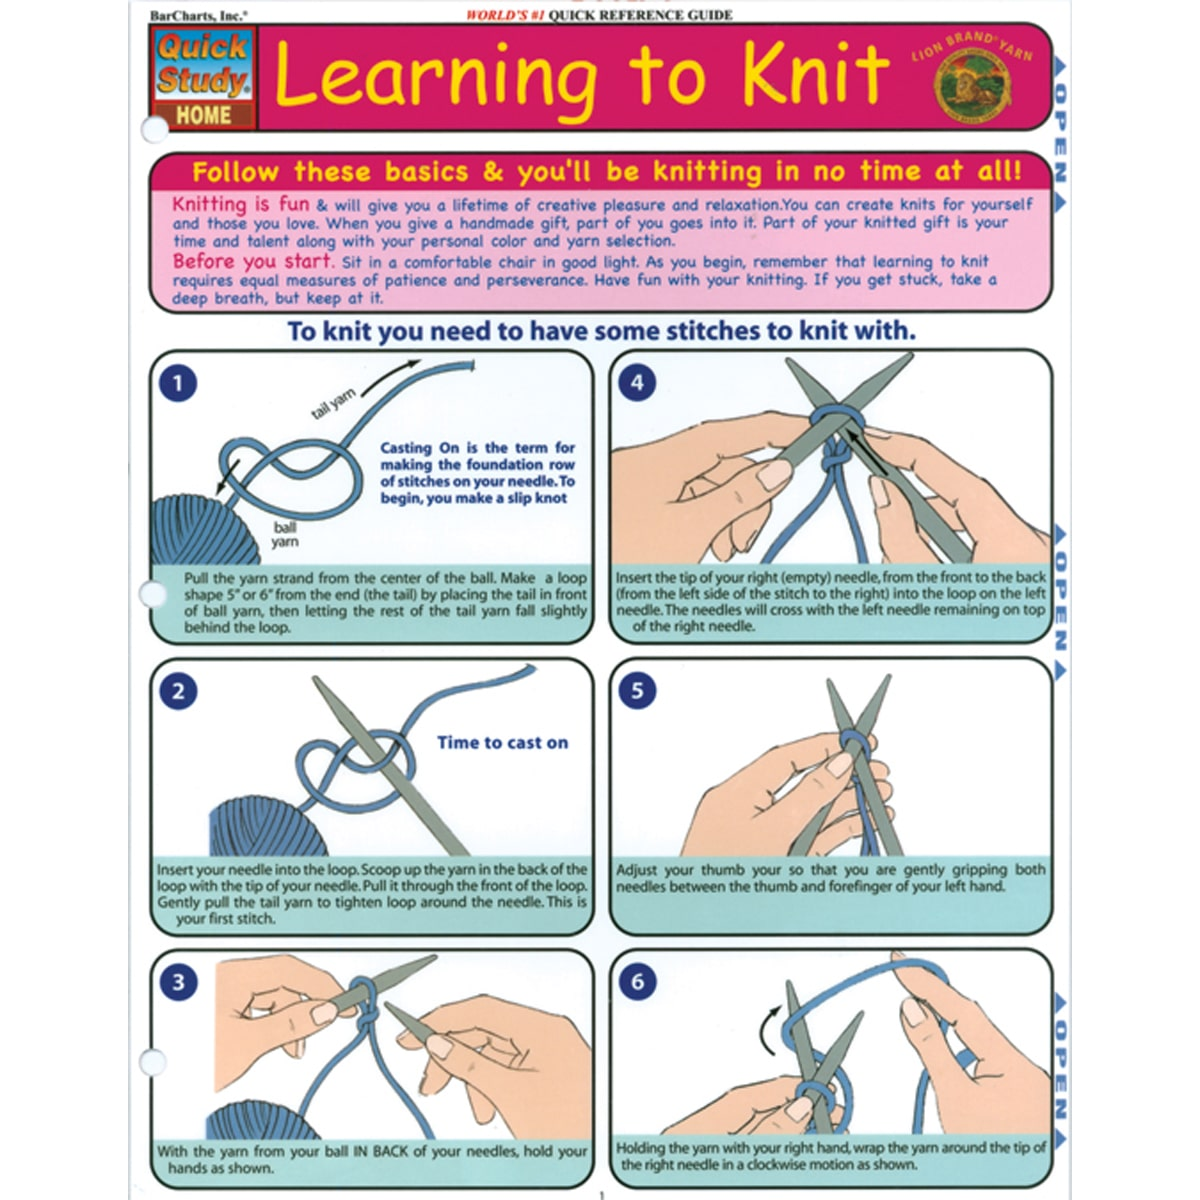 Quick Study Reference Guide Learning To Knit